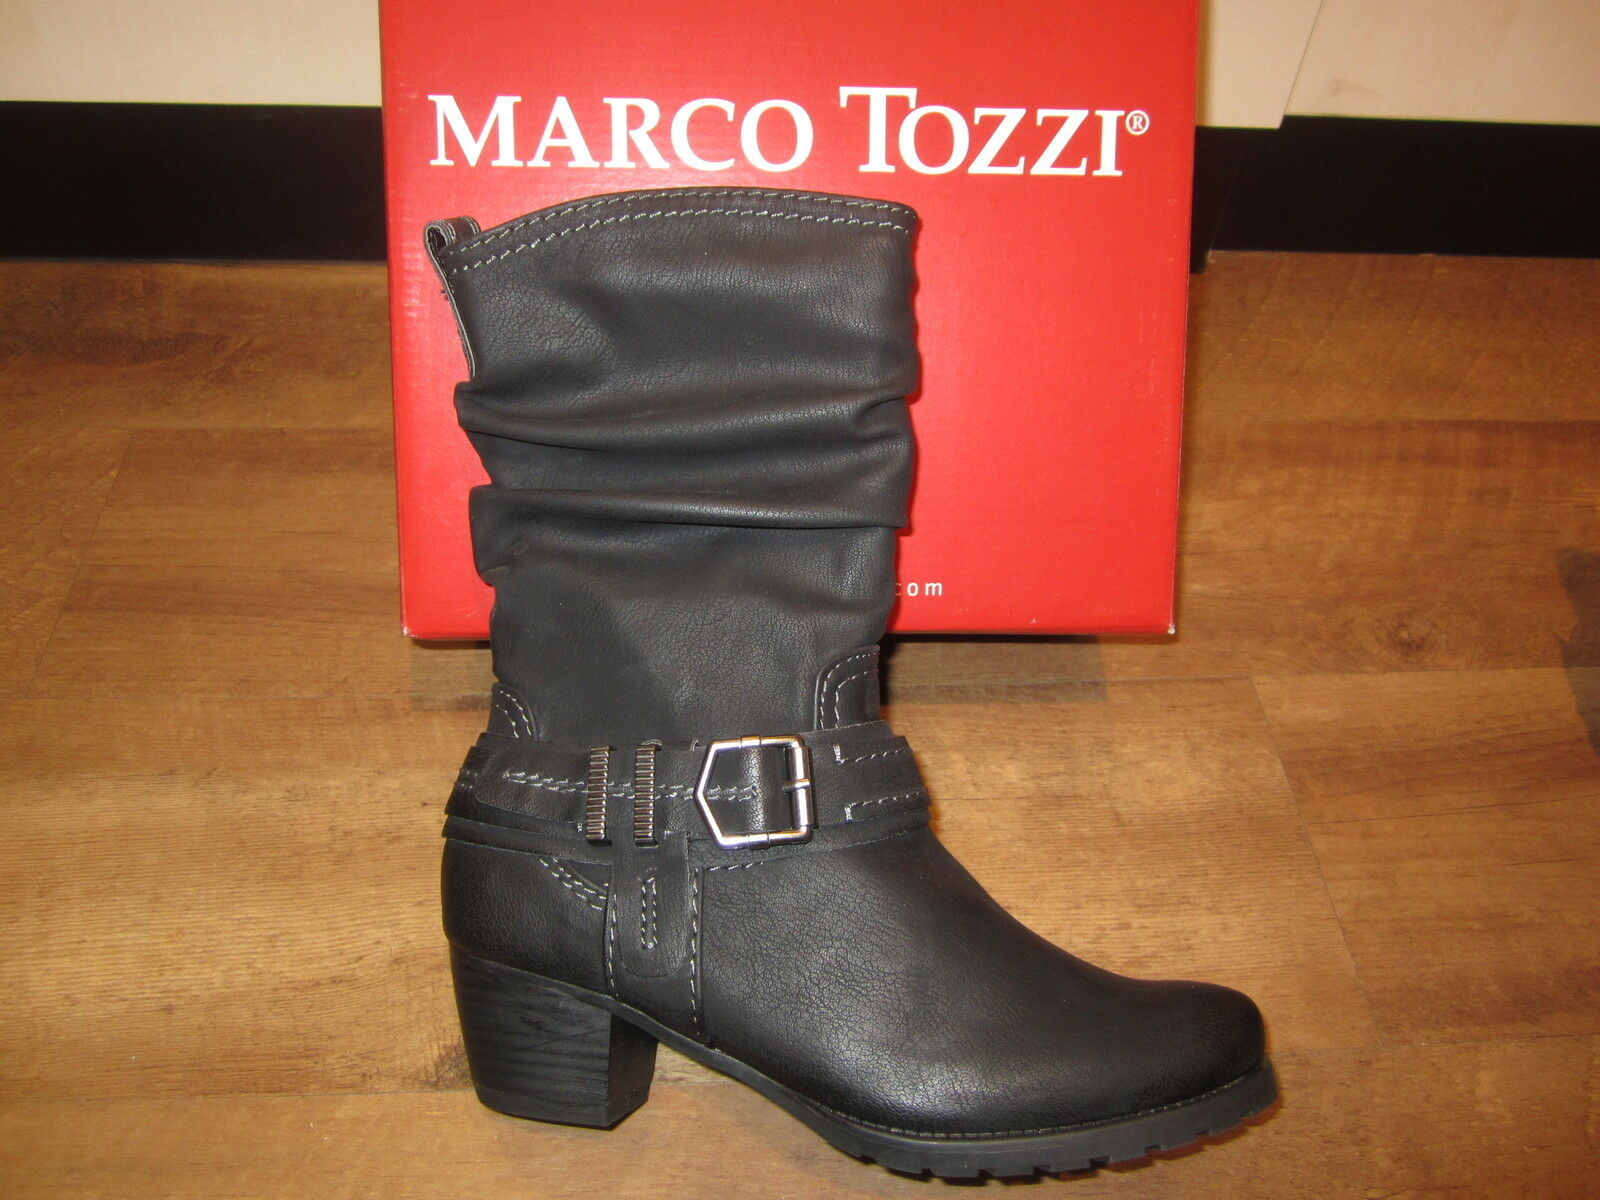 Marco Tozzi Women's Boots, Ankle Boots, Black, Boots New